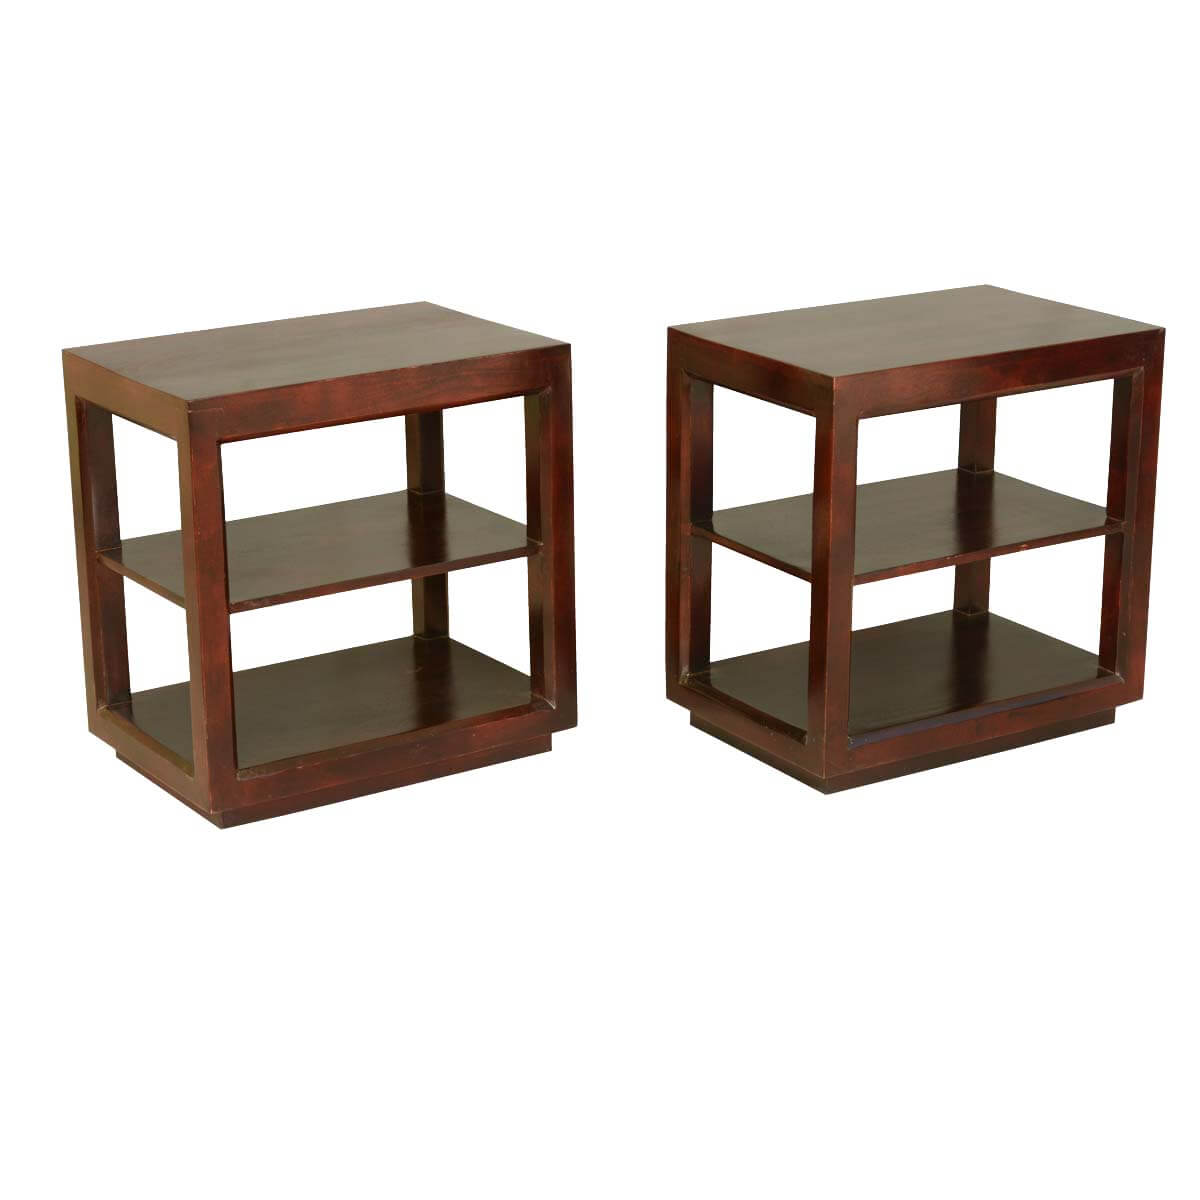 sc 1 st  Sierra Living Concepts & Hamden Contemporary Mango Wood 3 Tier Open Sided End Tables Set of 2